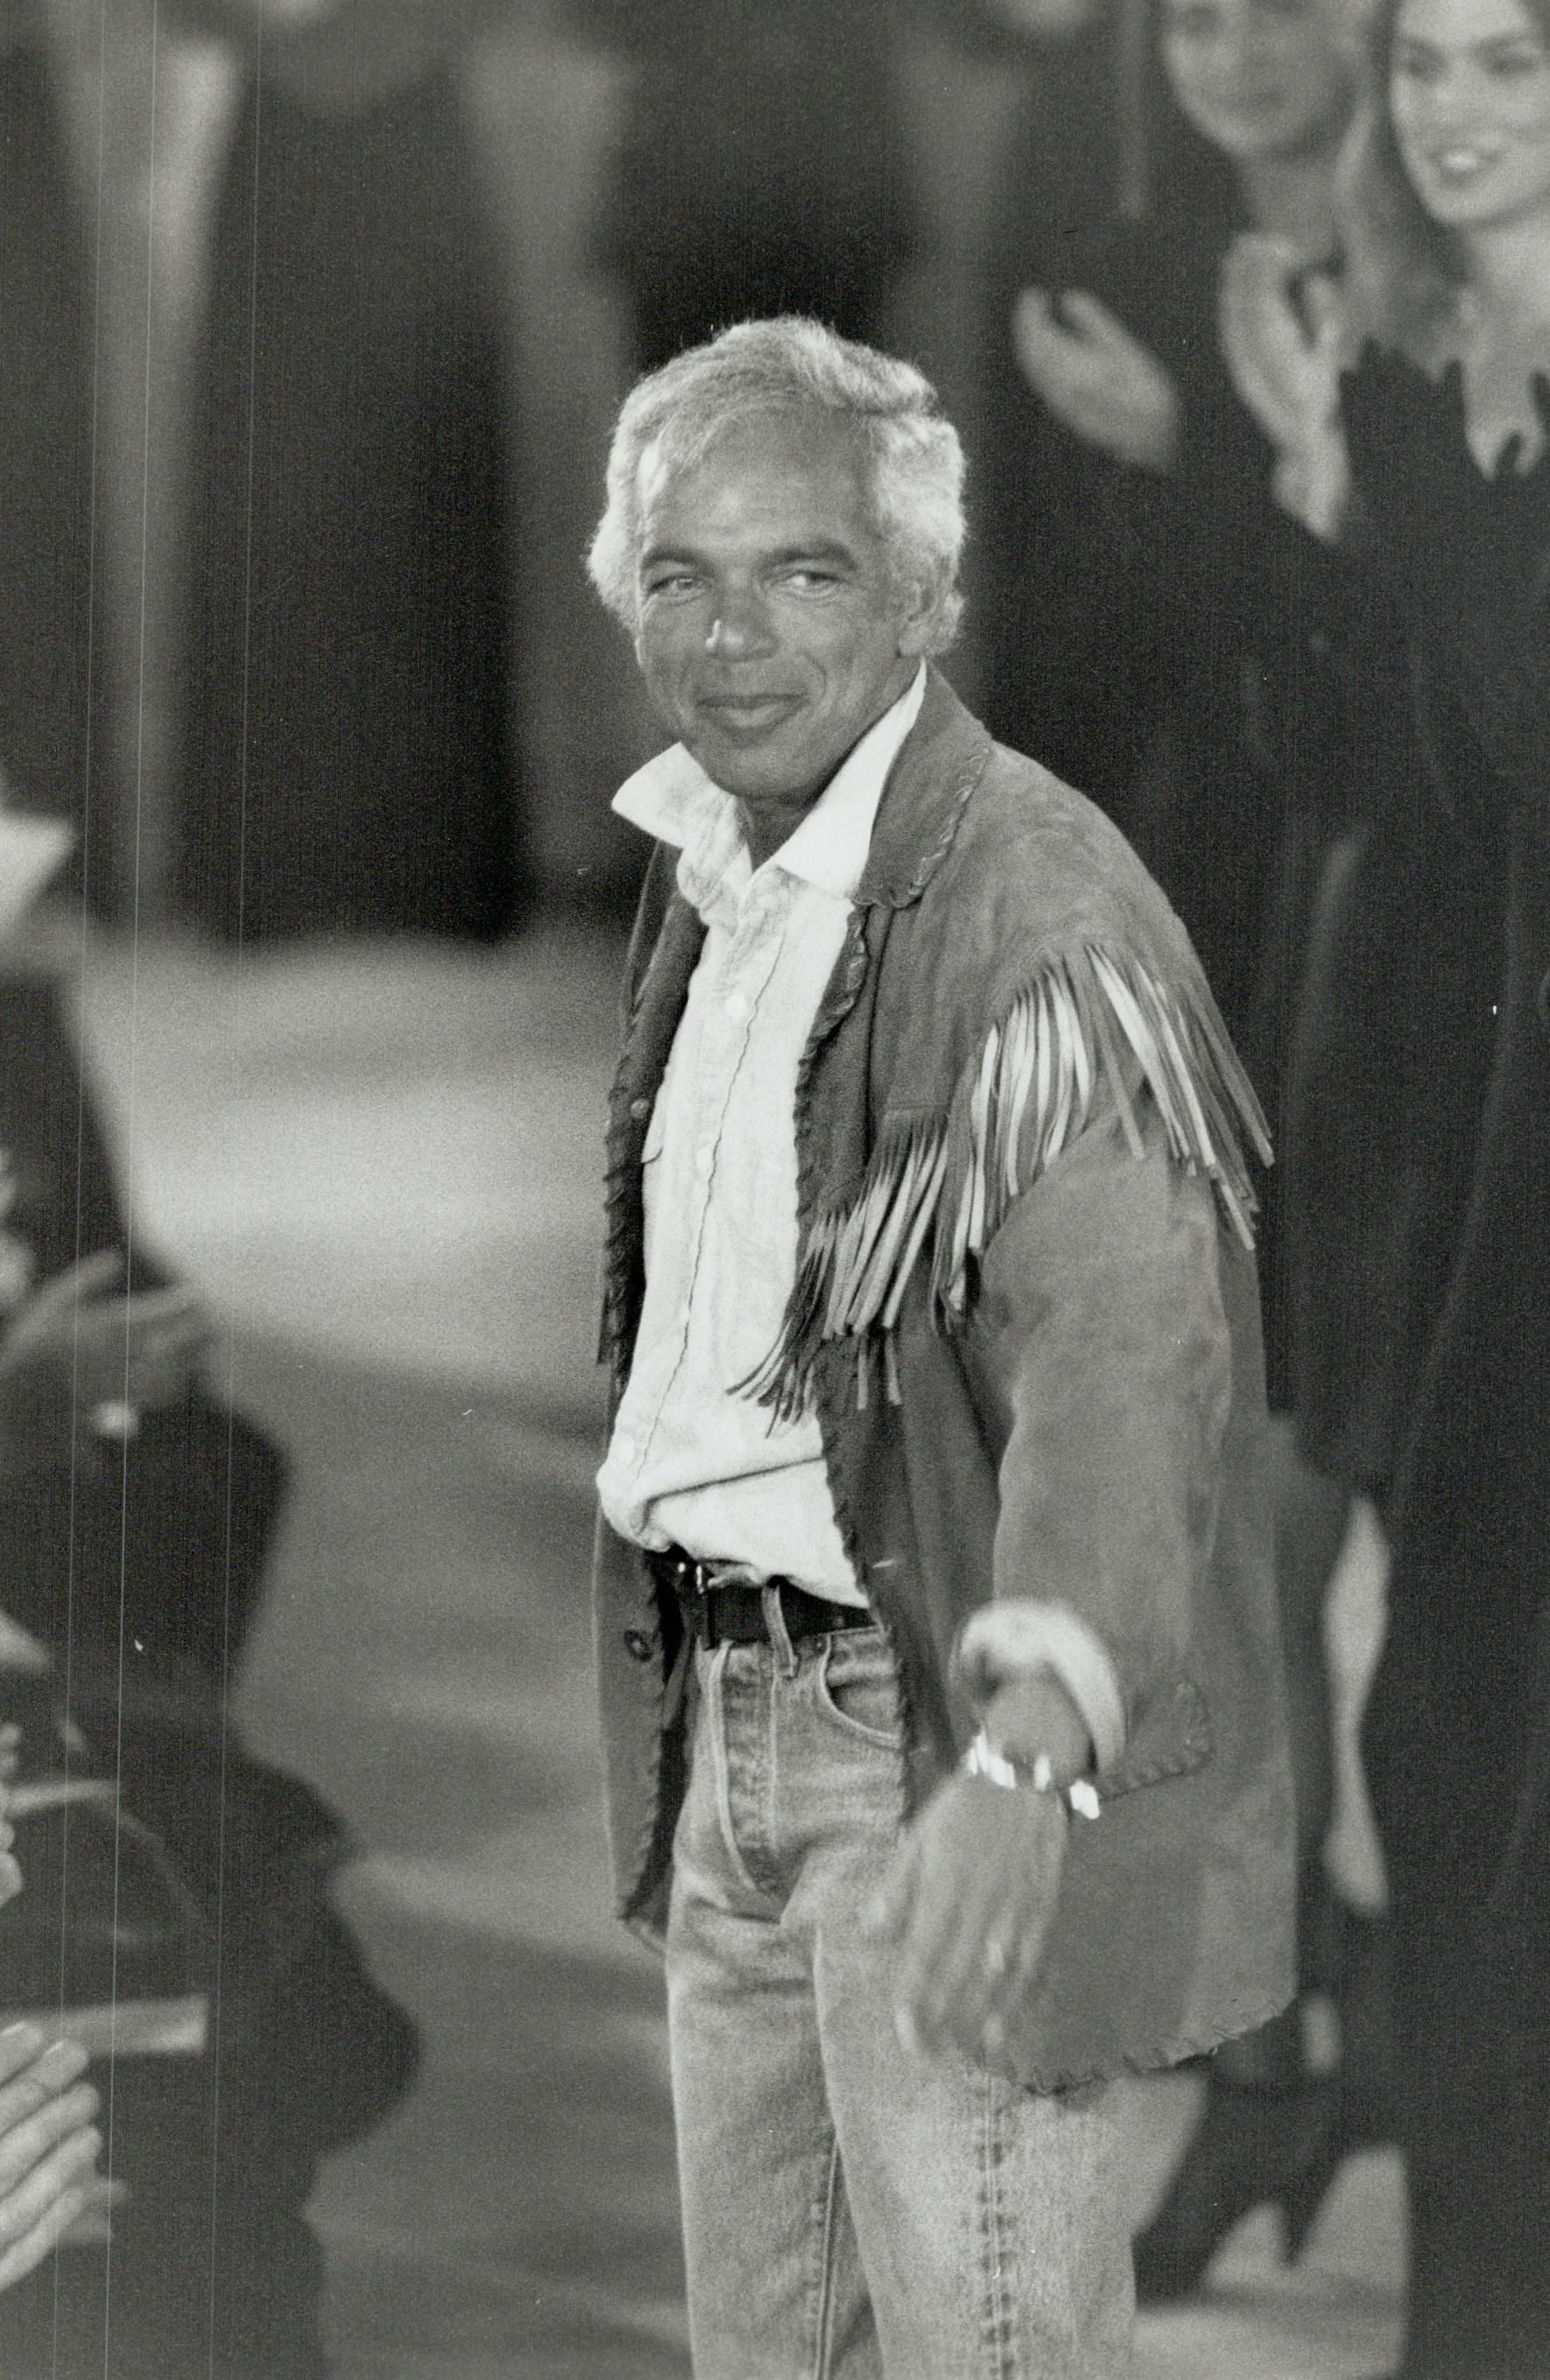 Ralph Lauren's life and work in pictures